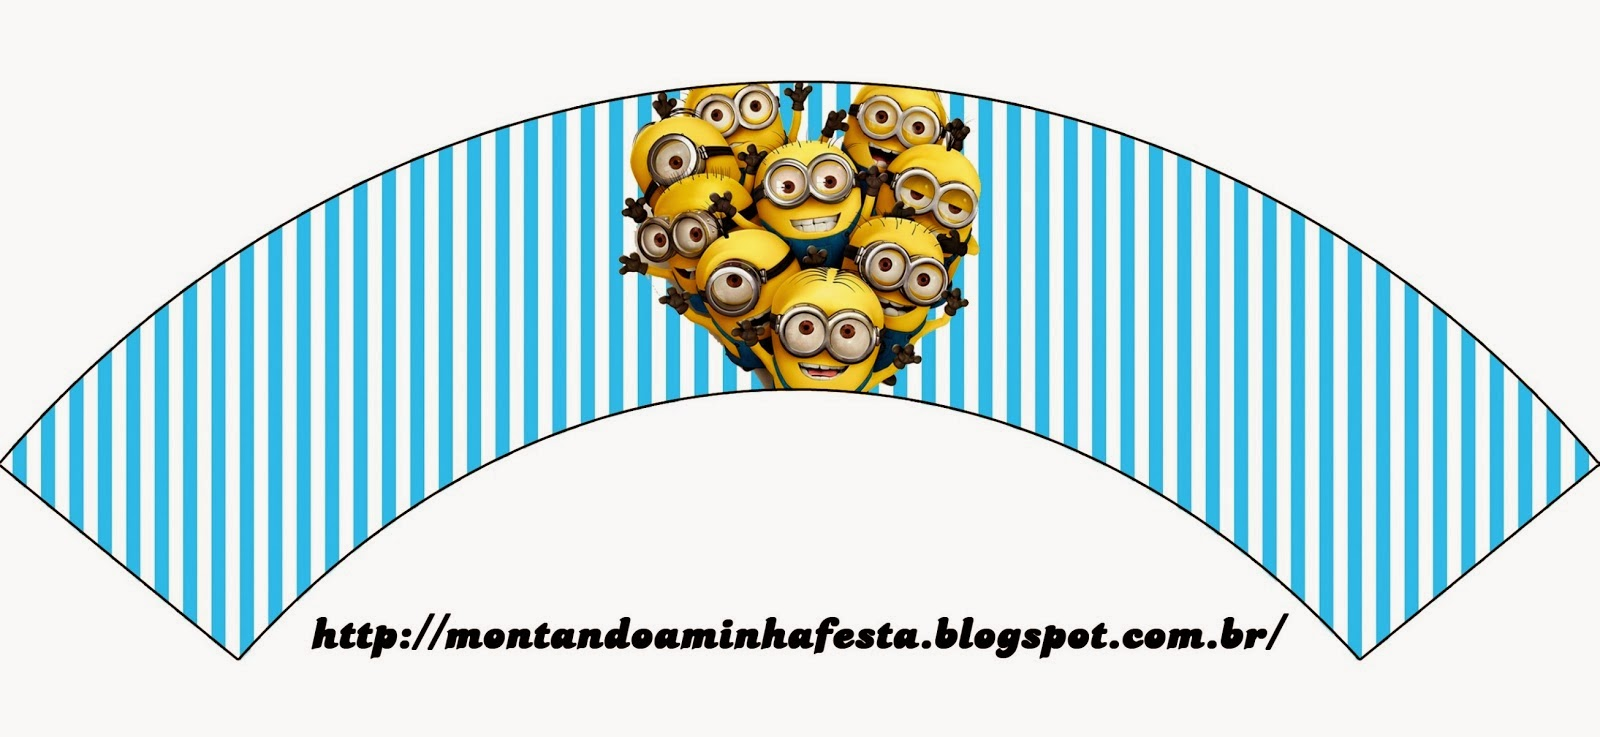 Let me sugest you some nice minions party articles from amazon butik